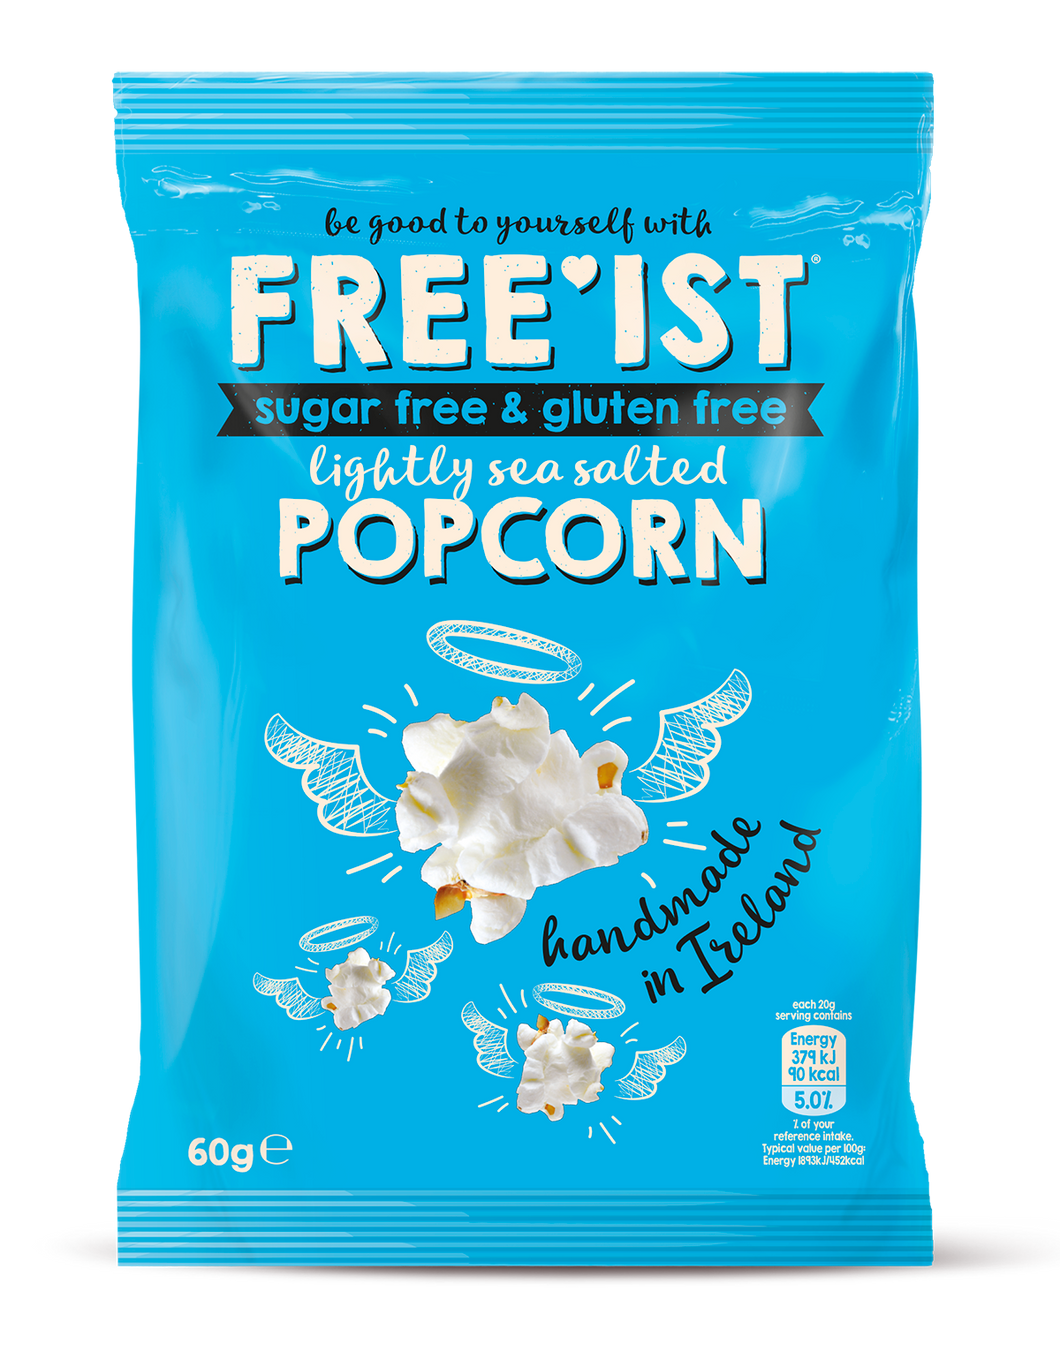 FREE'IST POPCORN LIGHTLY SEA SALTED